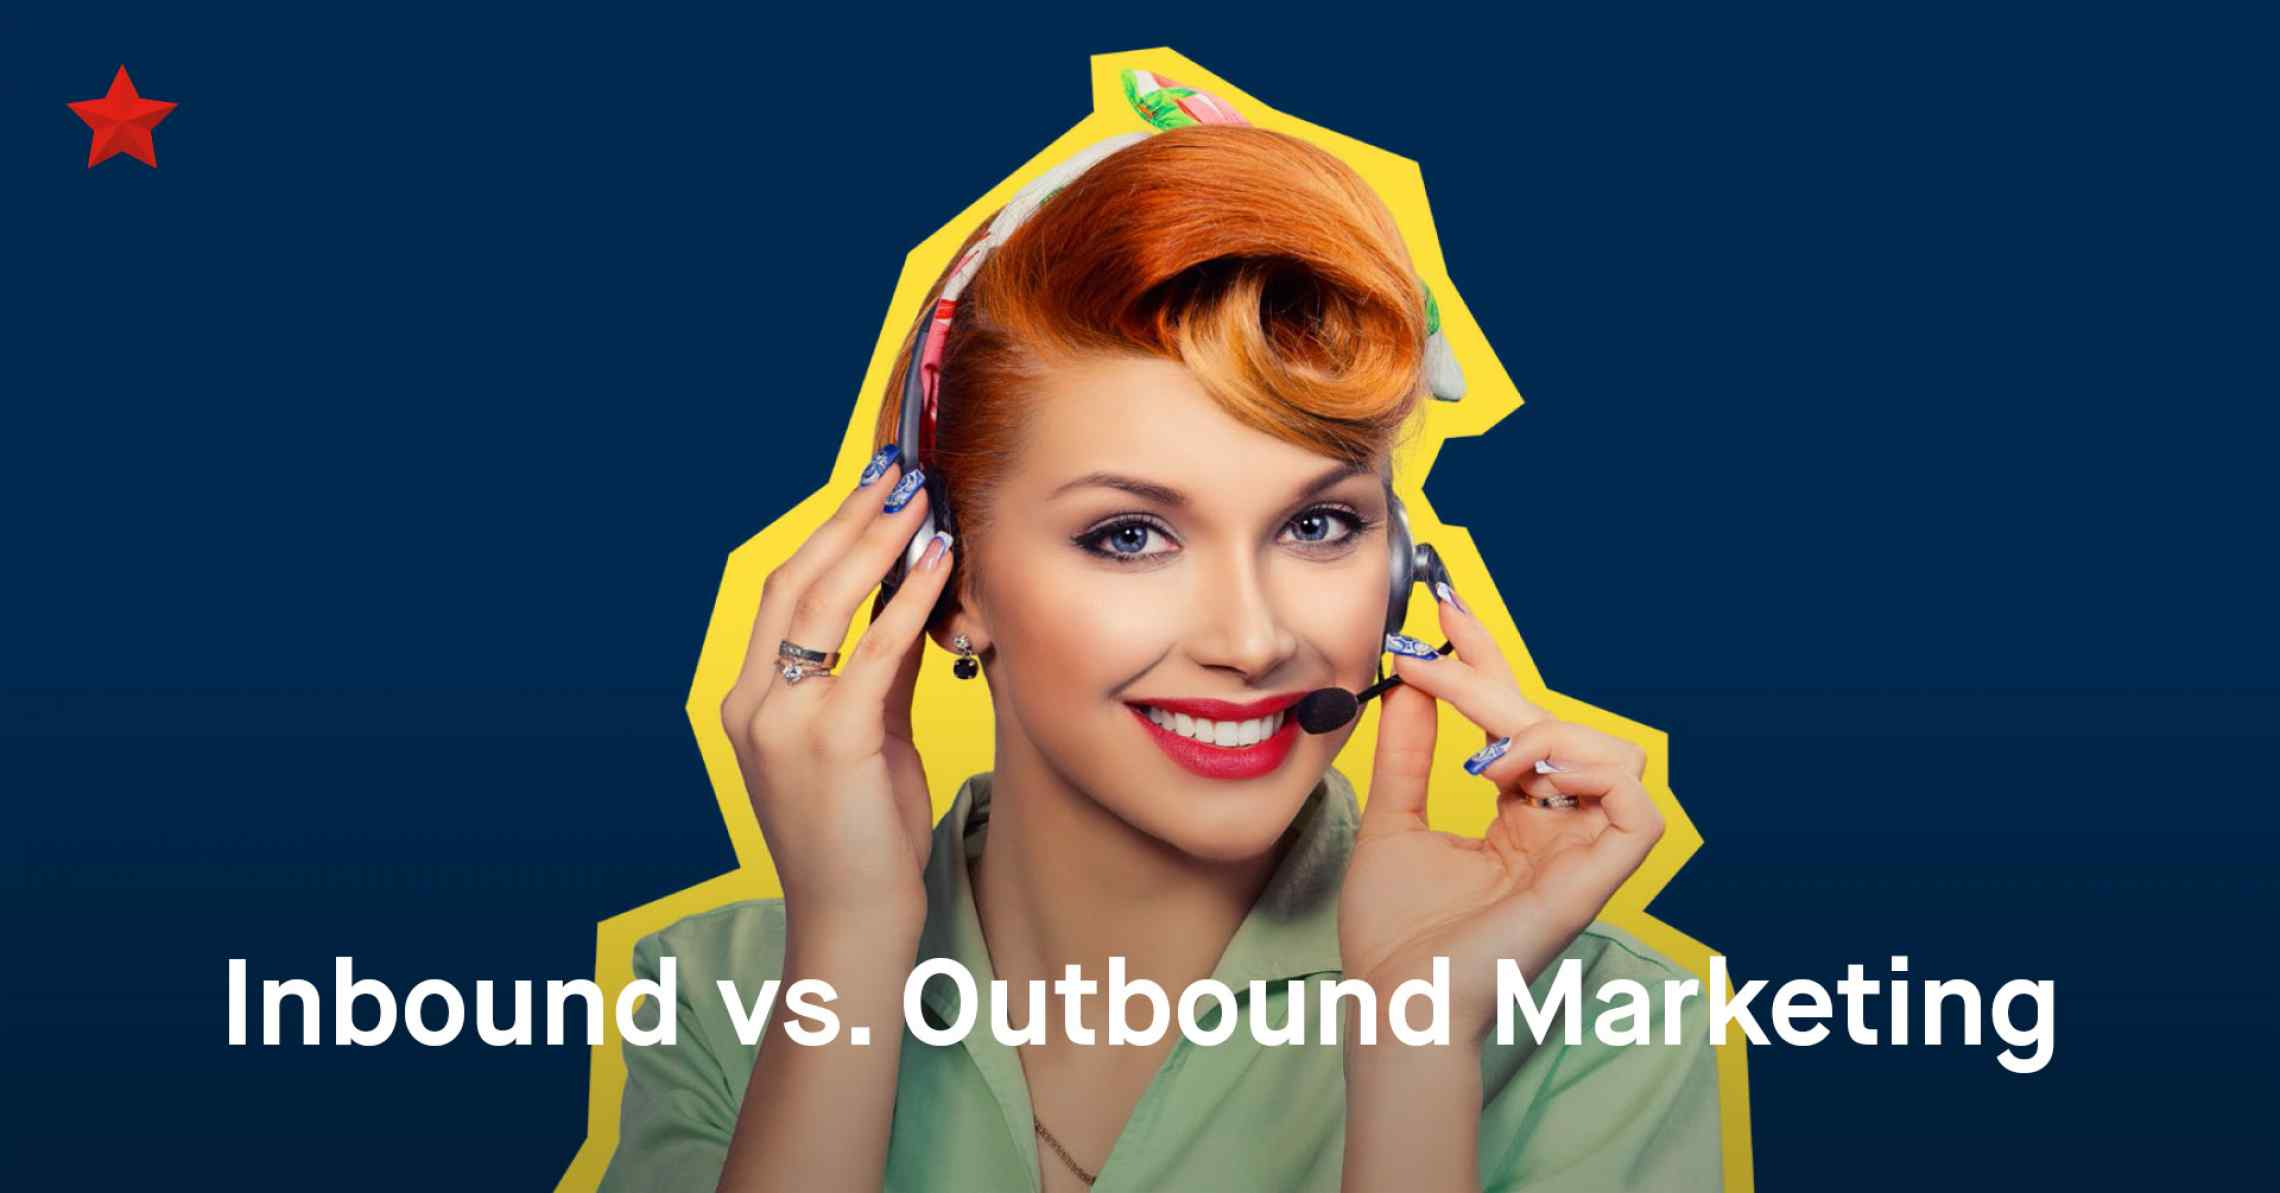 Inbound vs Outbound Marketing: Can there Only Be One Winner?